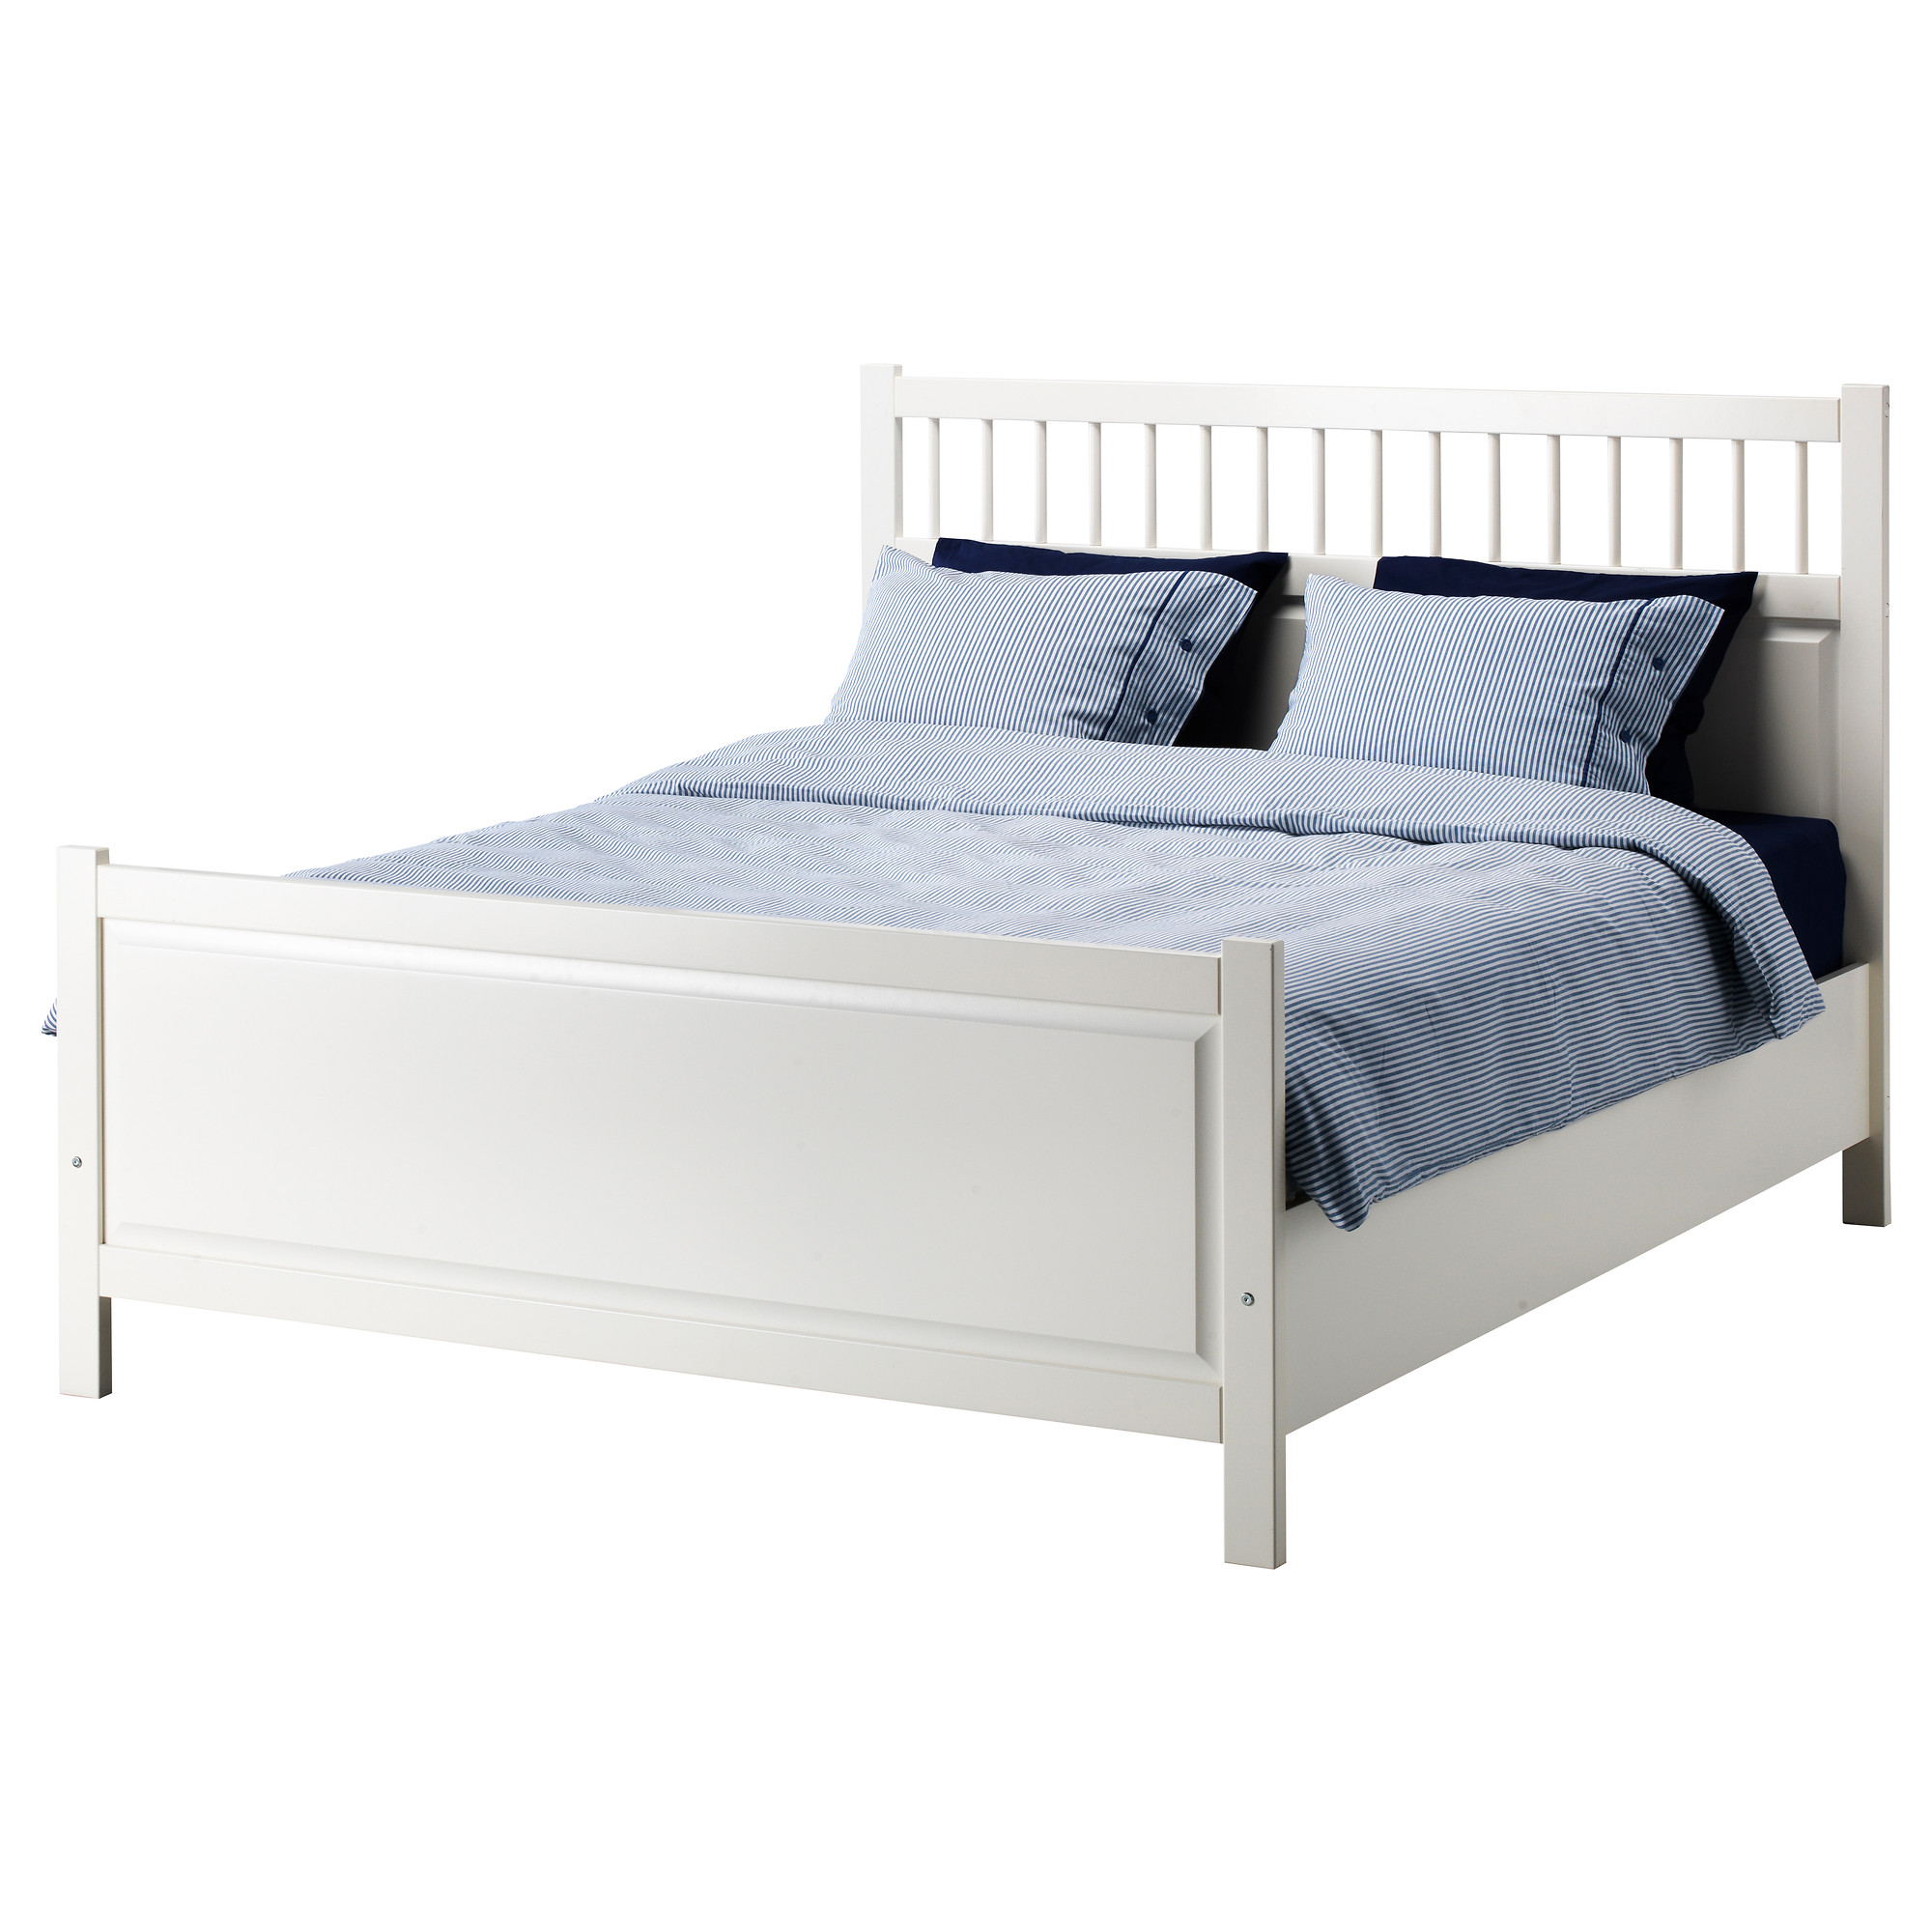 Full White Beds Frames Bedroom Furniture Ikea With Blue Pillows And Cover